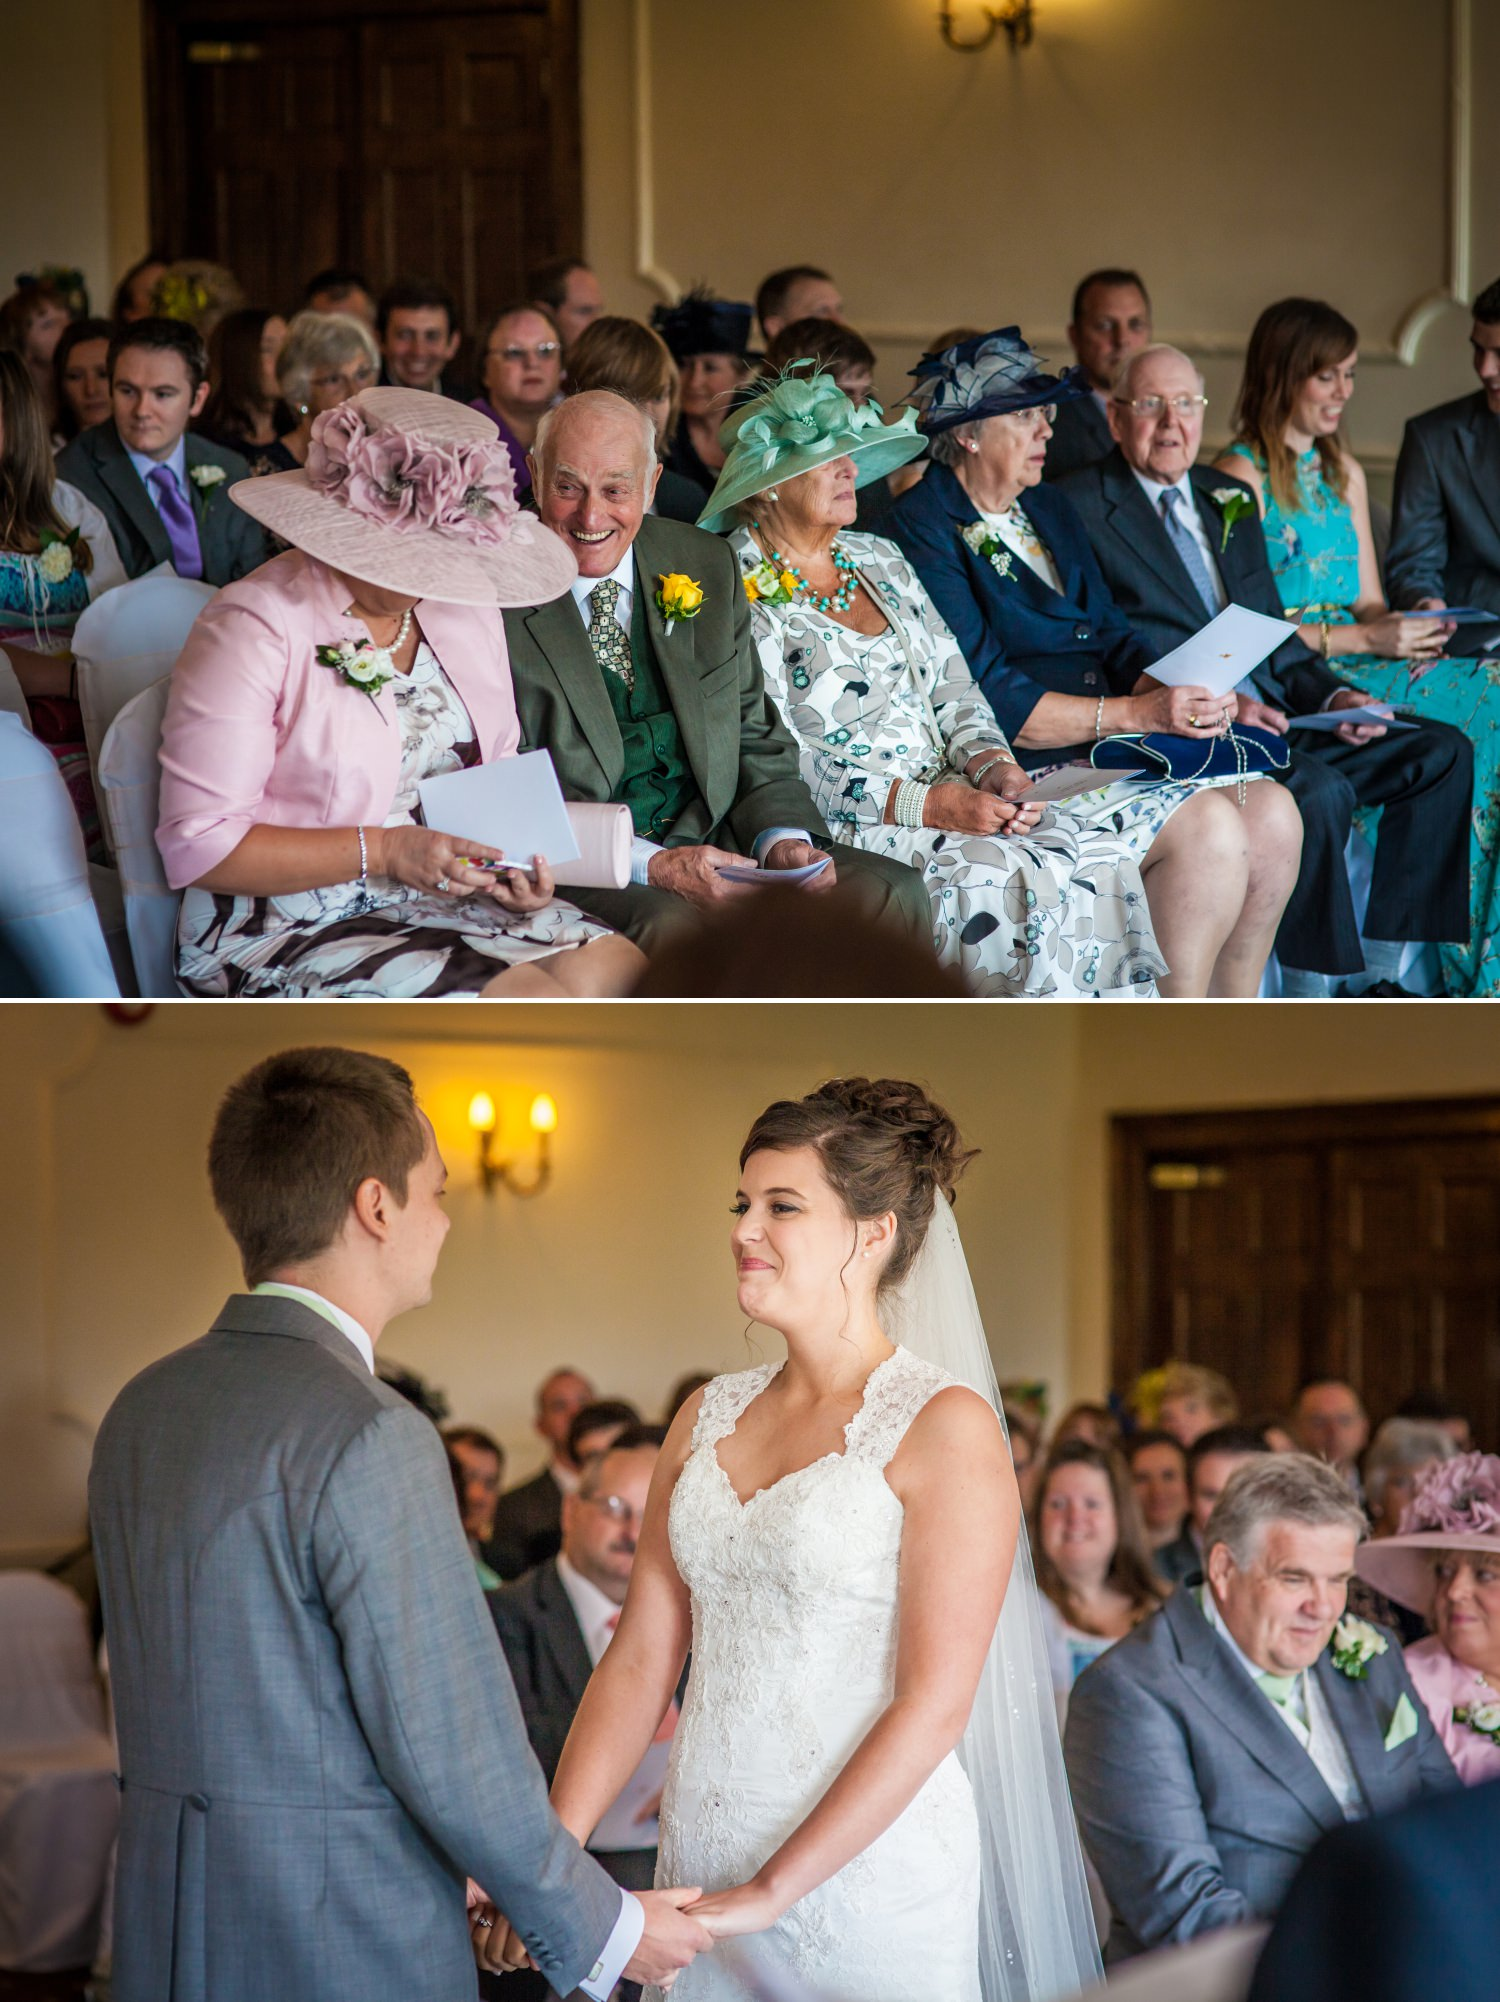 Wedding photography of a wedding ceremony at Willington Hall, Cheshire